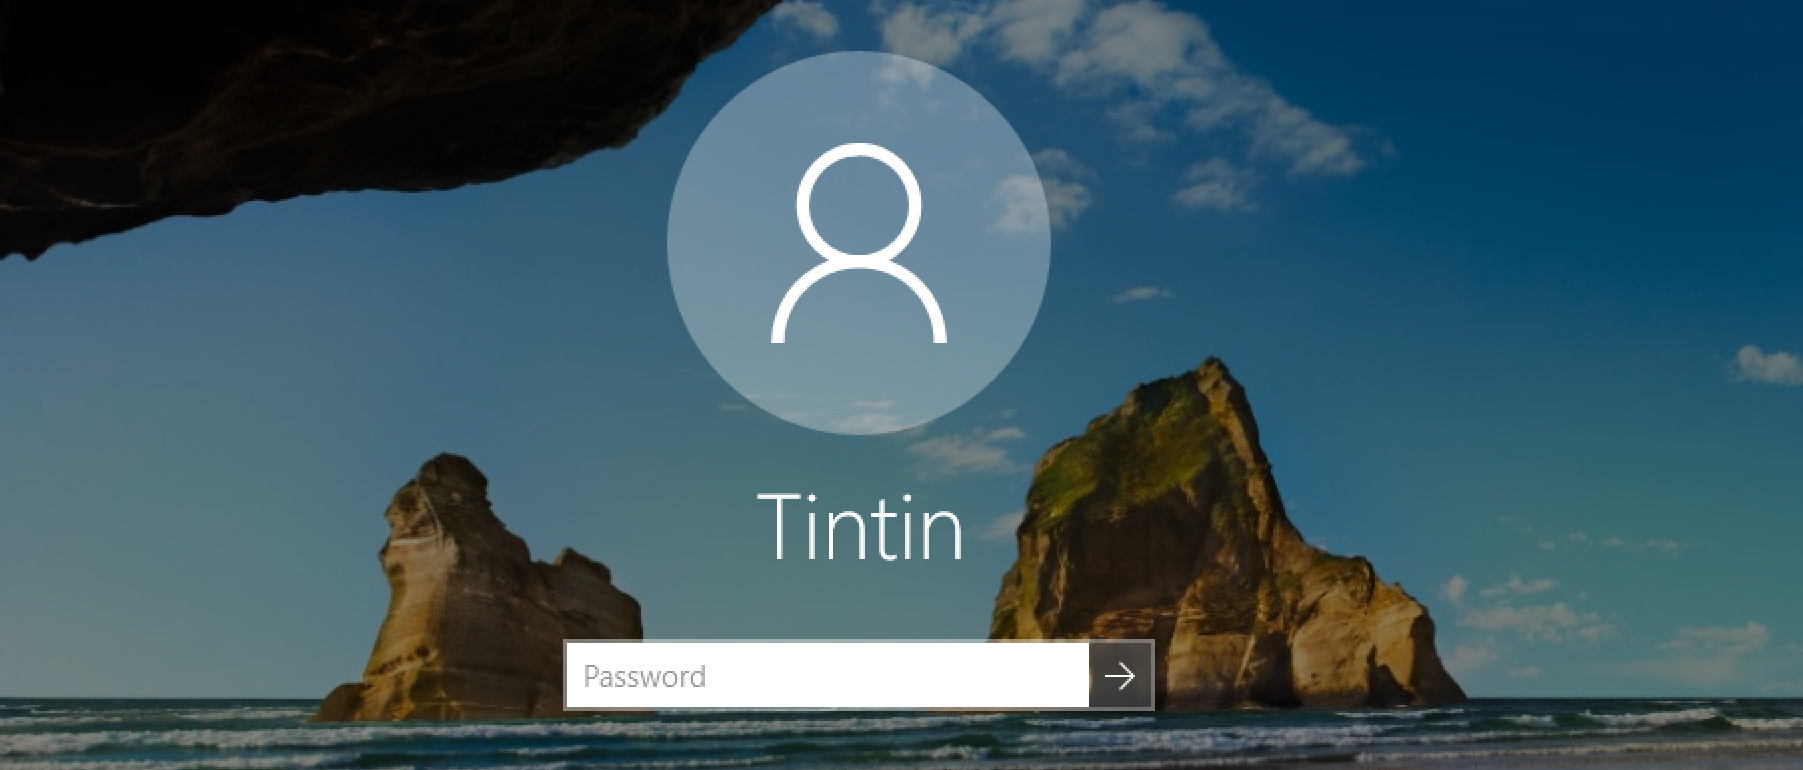 log in to local windows 10.1 user account tintin